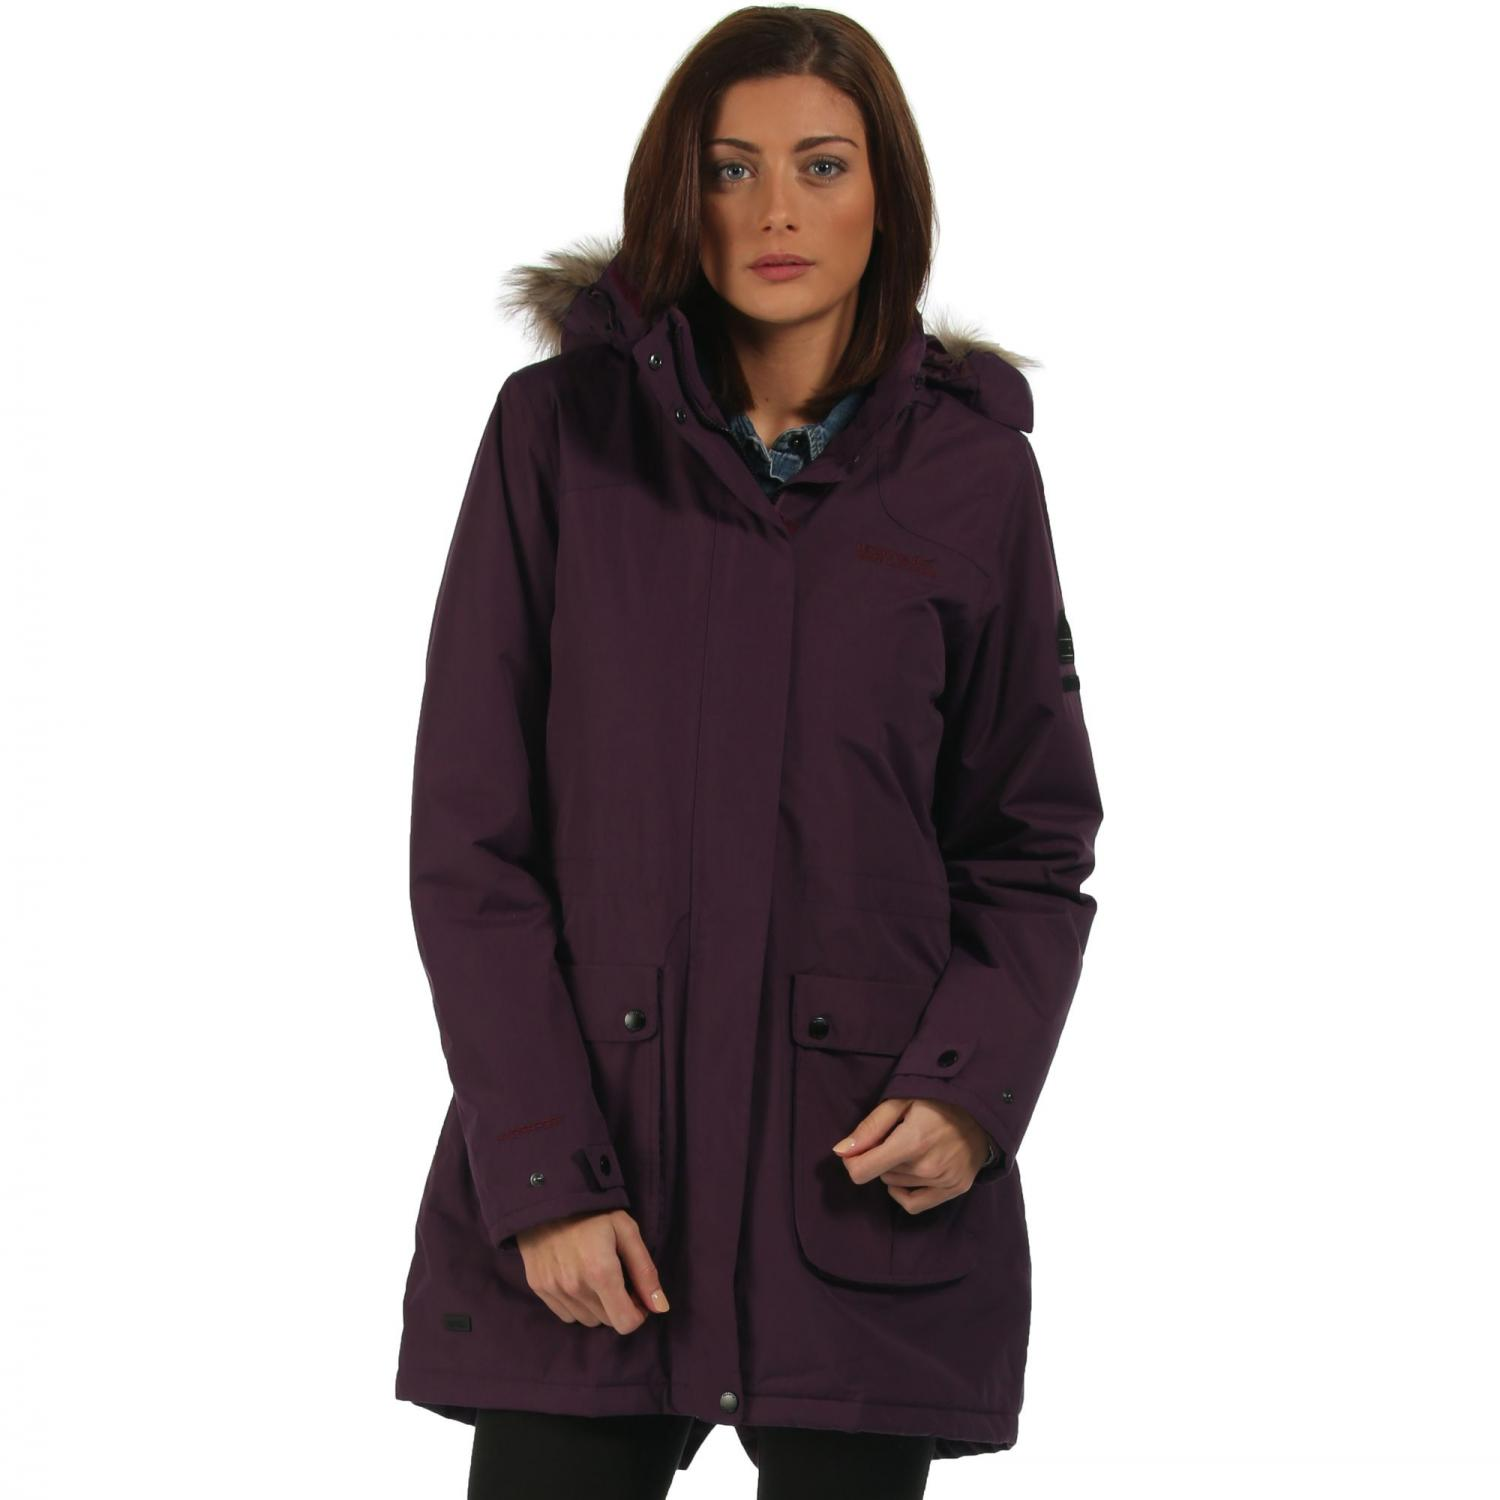 Schima Parka Jacket Blackberry Wine